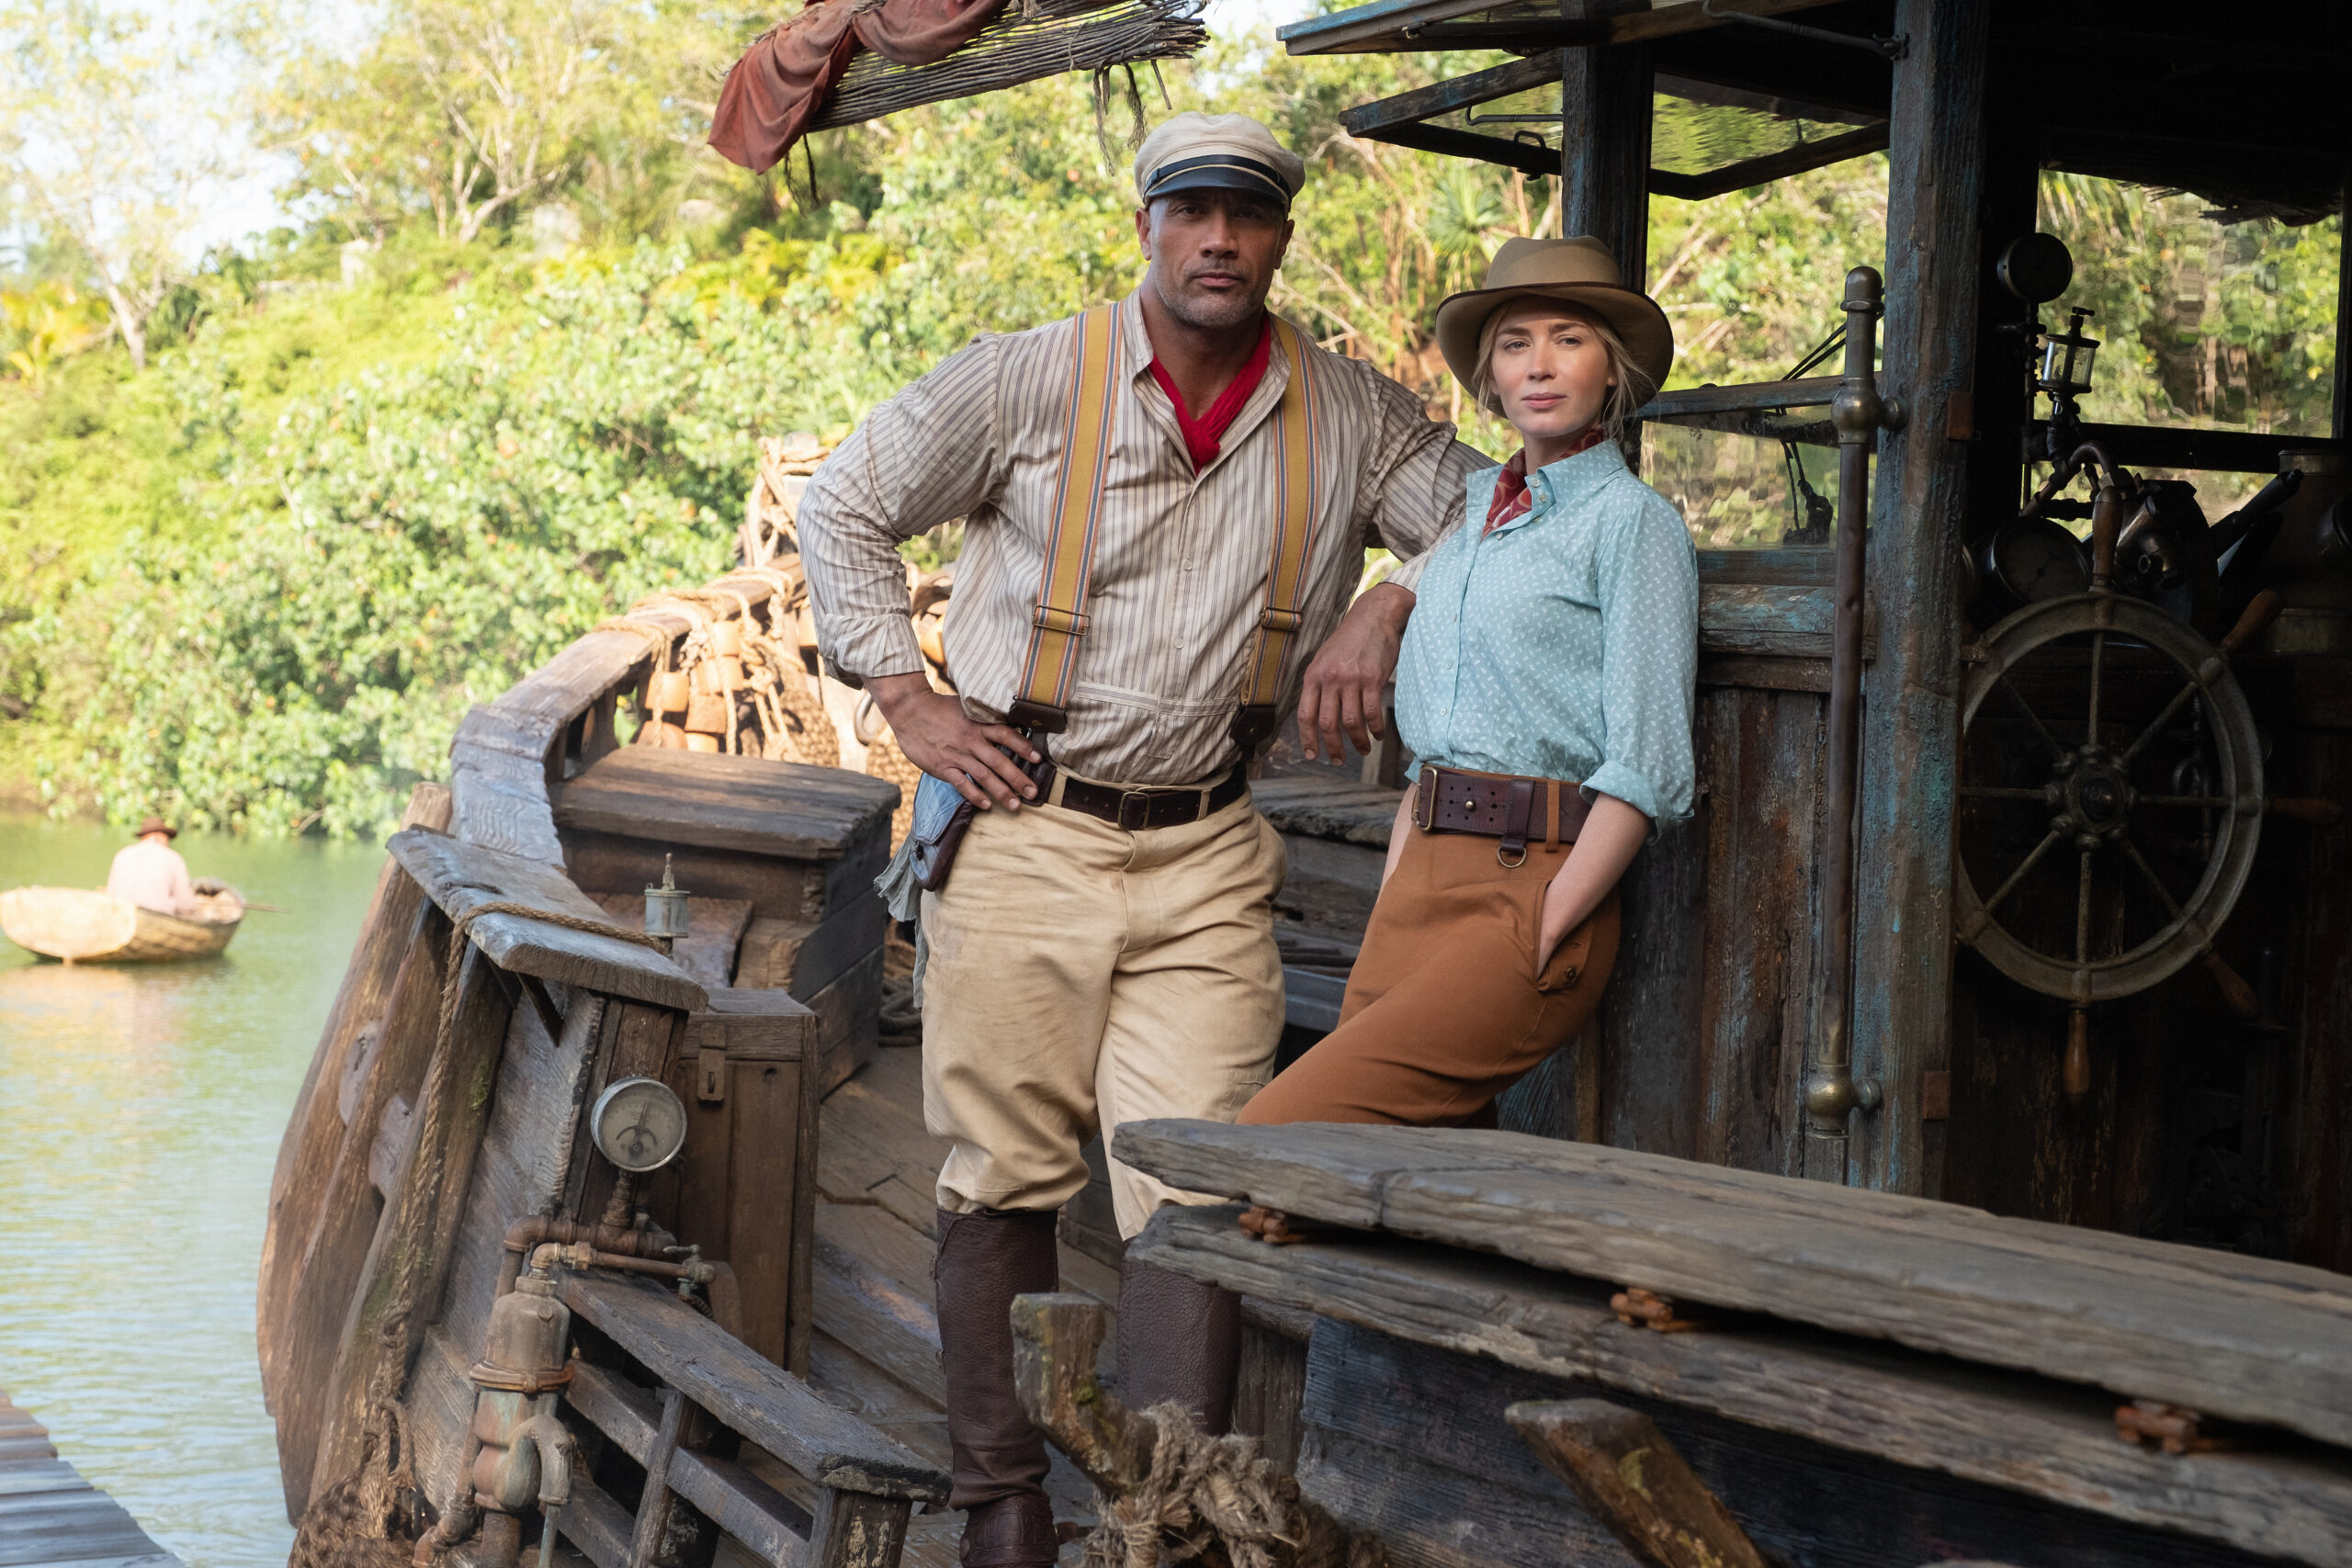 Lily and Frank Jungle Cruise